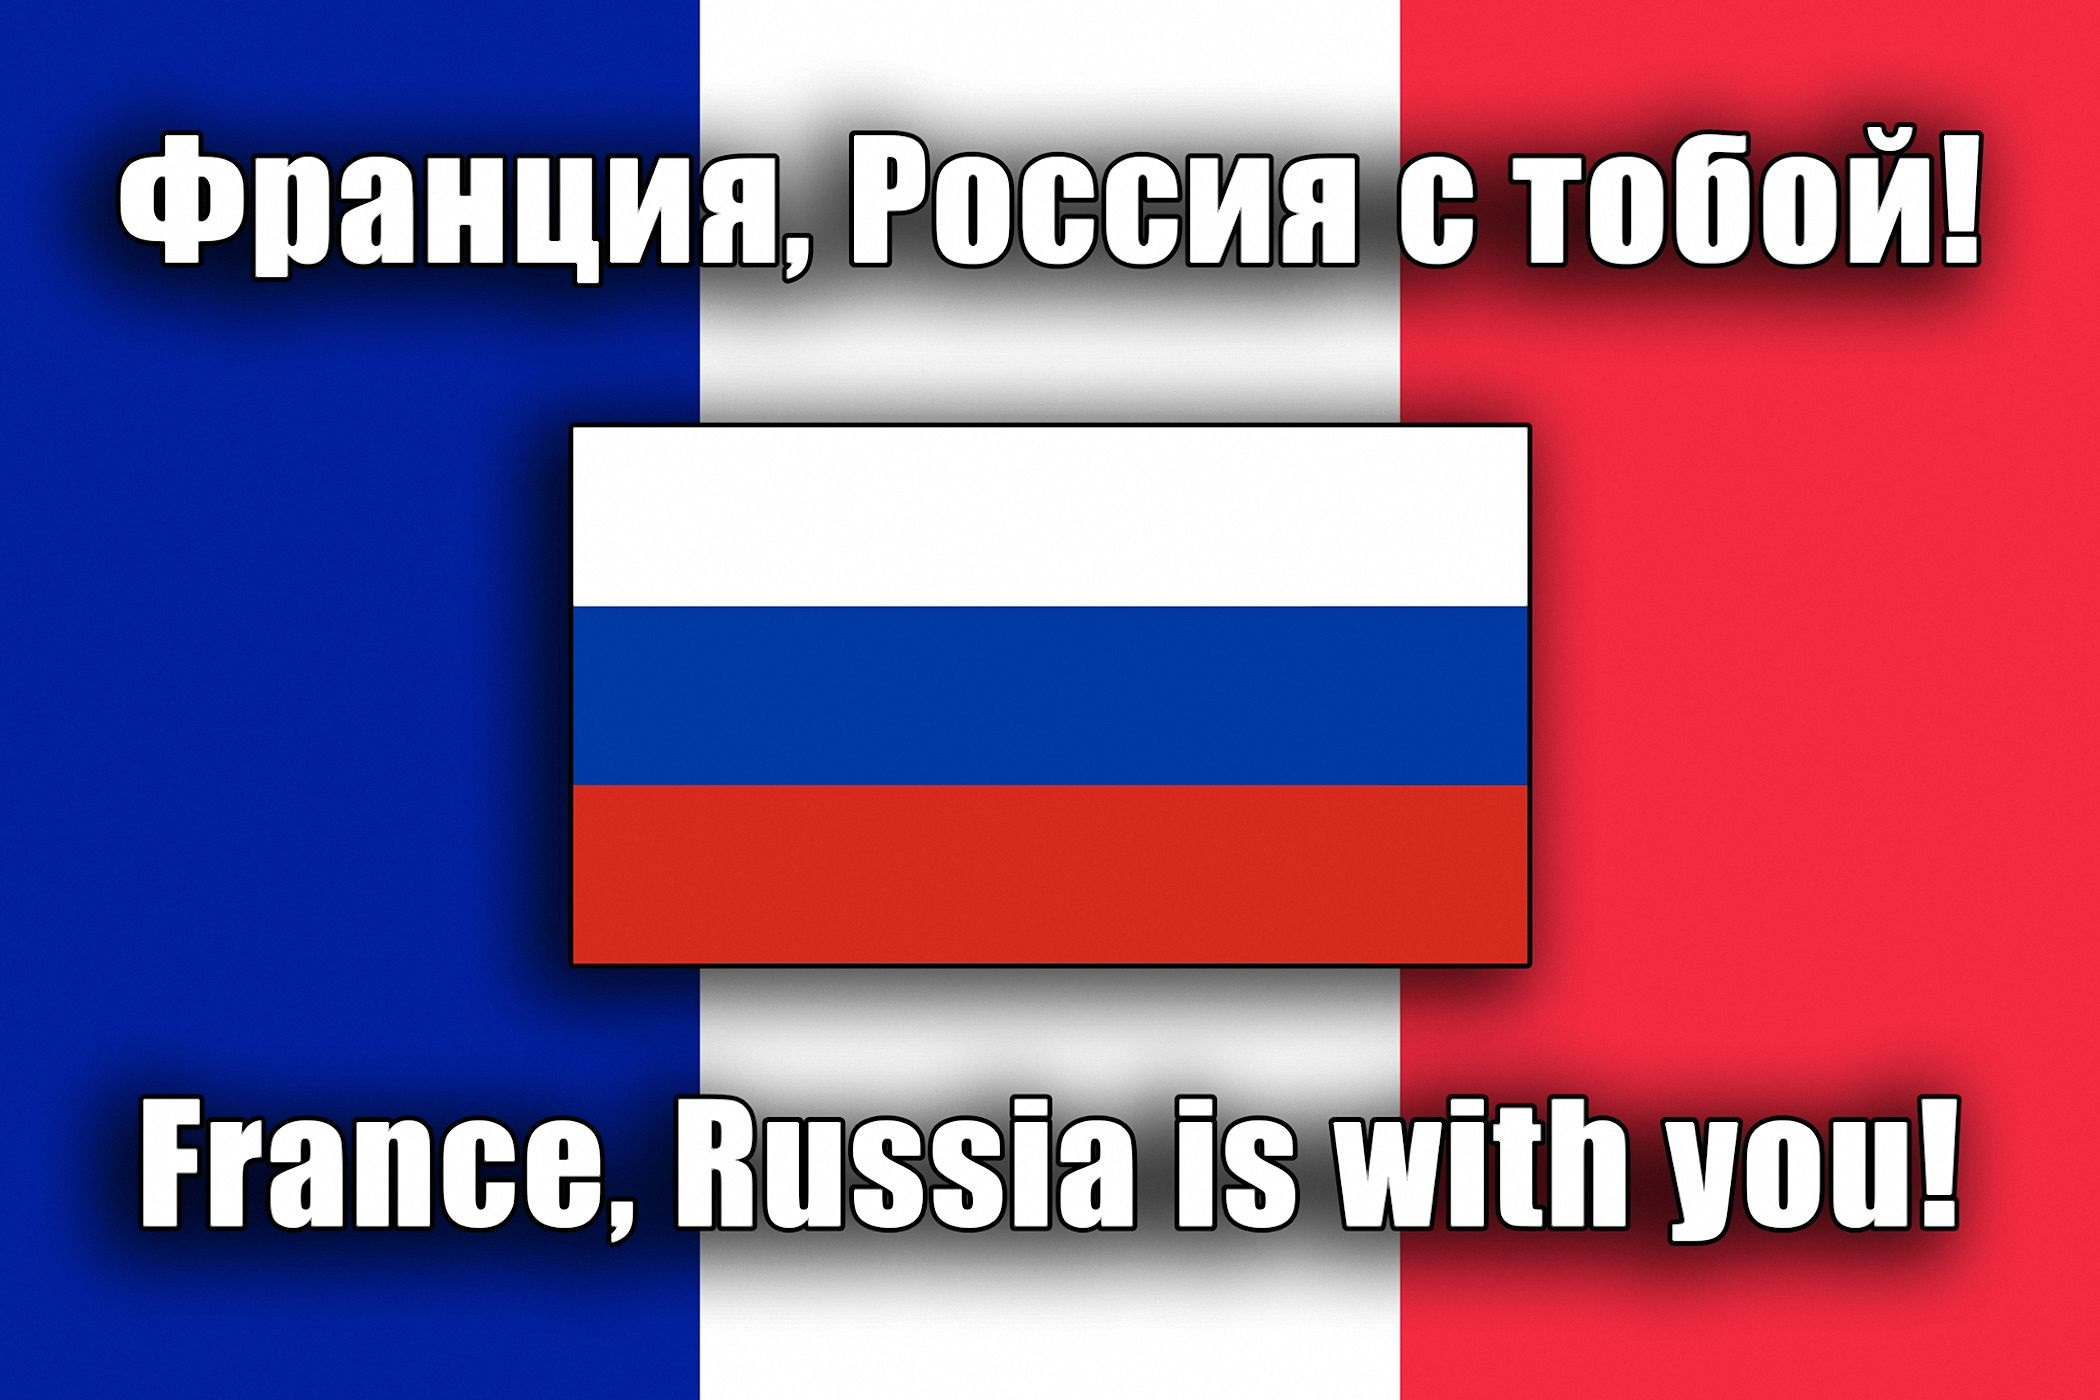 00 france, russia is with you! 151115